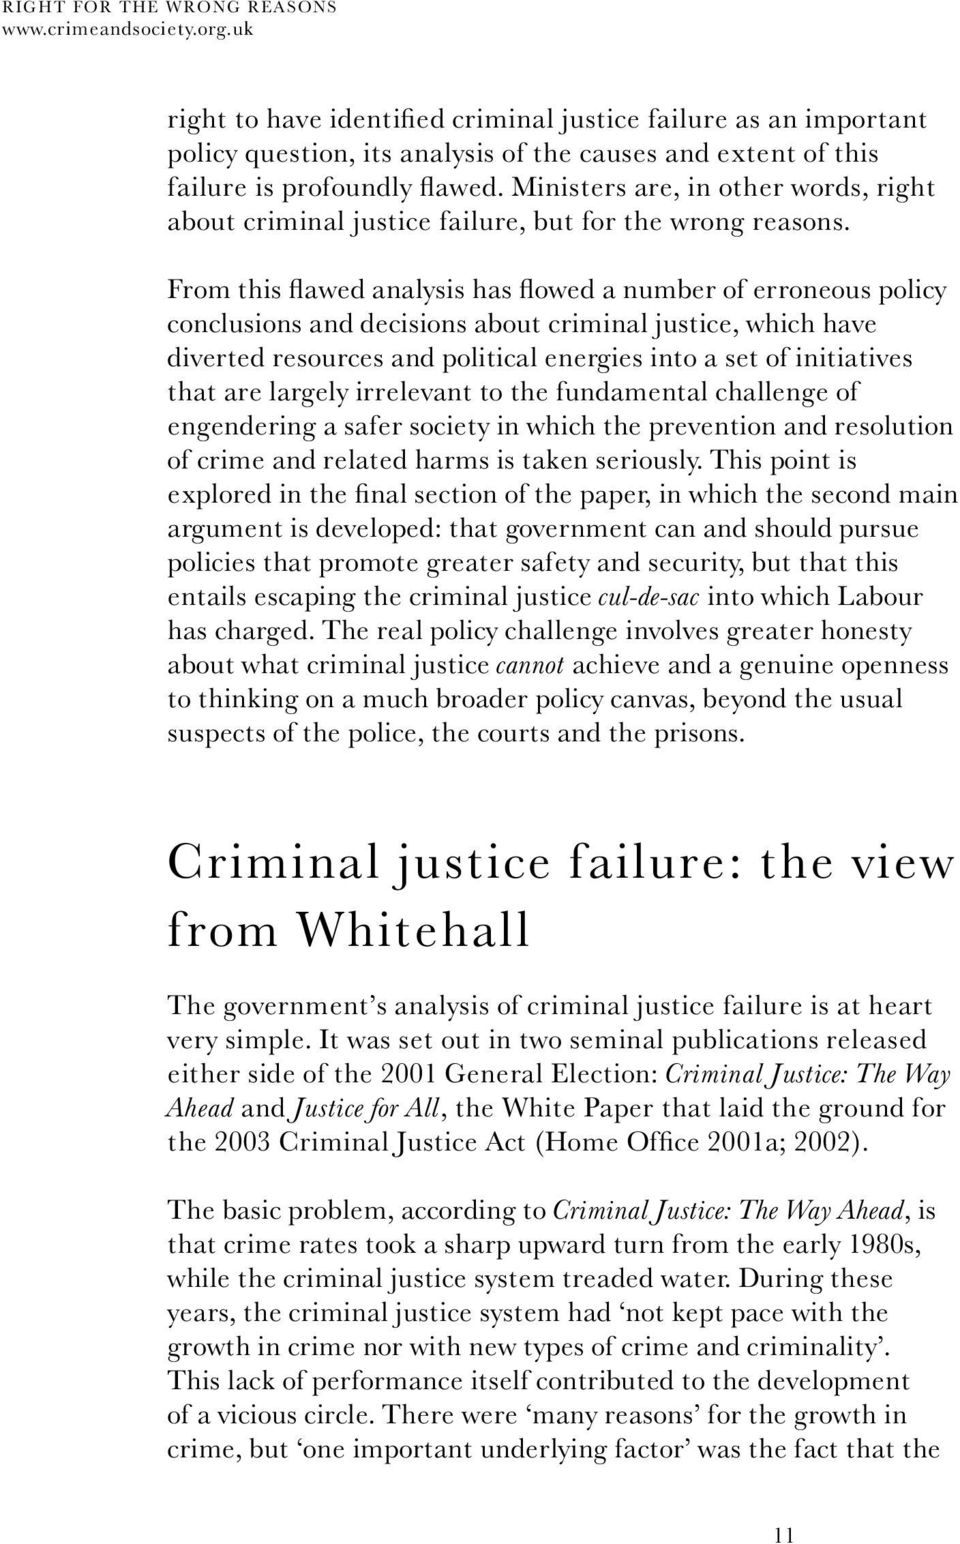 From this flawed analysis has flowed a number of erroneous policy conclusions and decisions about criminal justice, which have diverted resources and political energies into a set of initiatives that